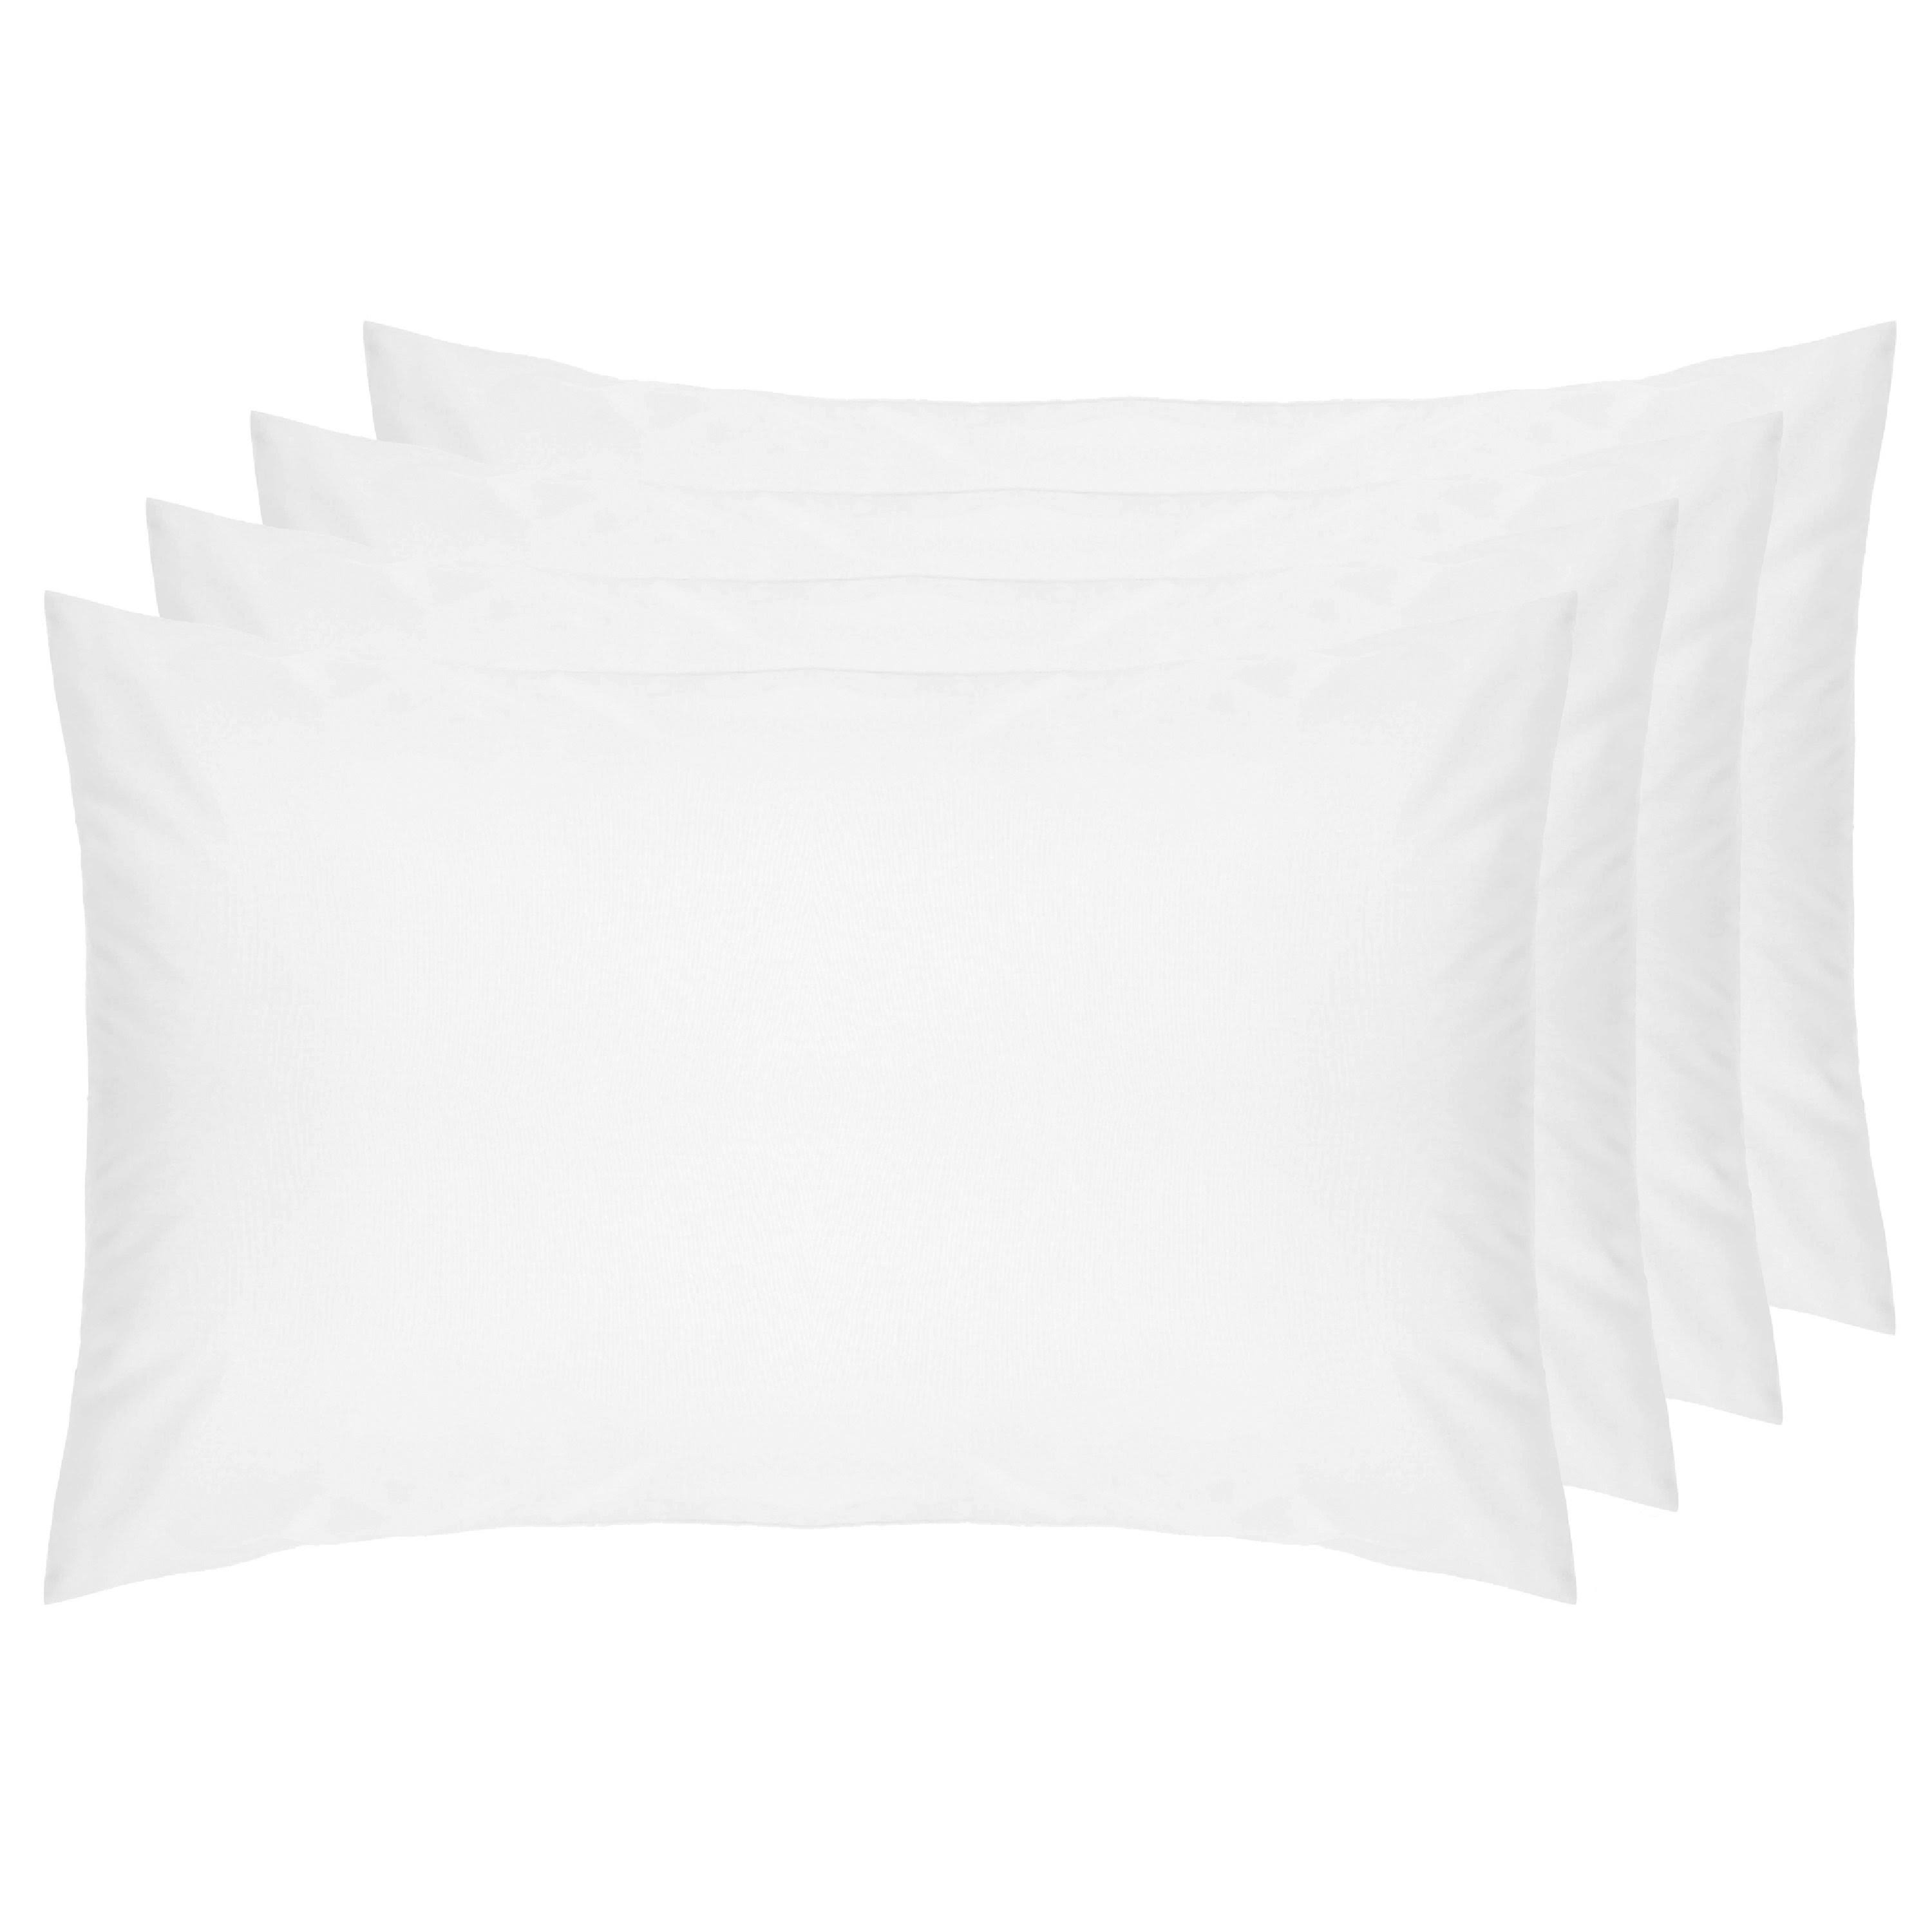 Belledorm 100% Cotton Percale 4 Pack Housewife Pillowcases White